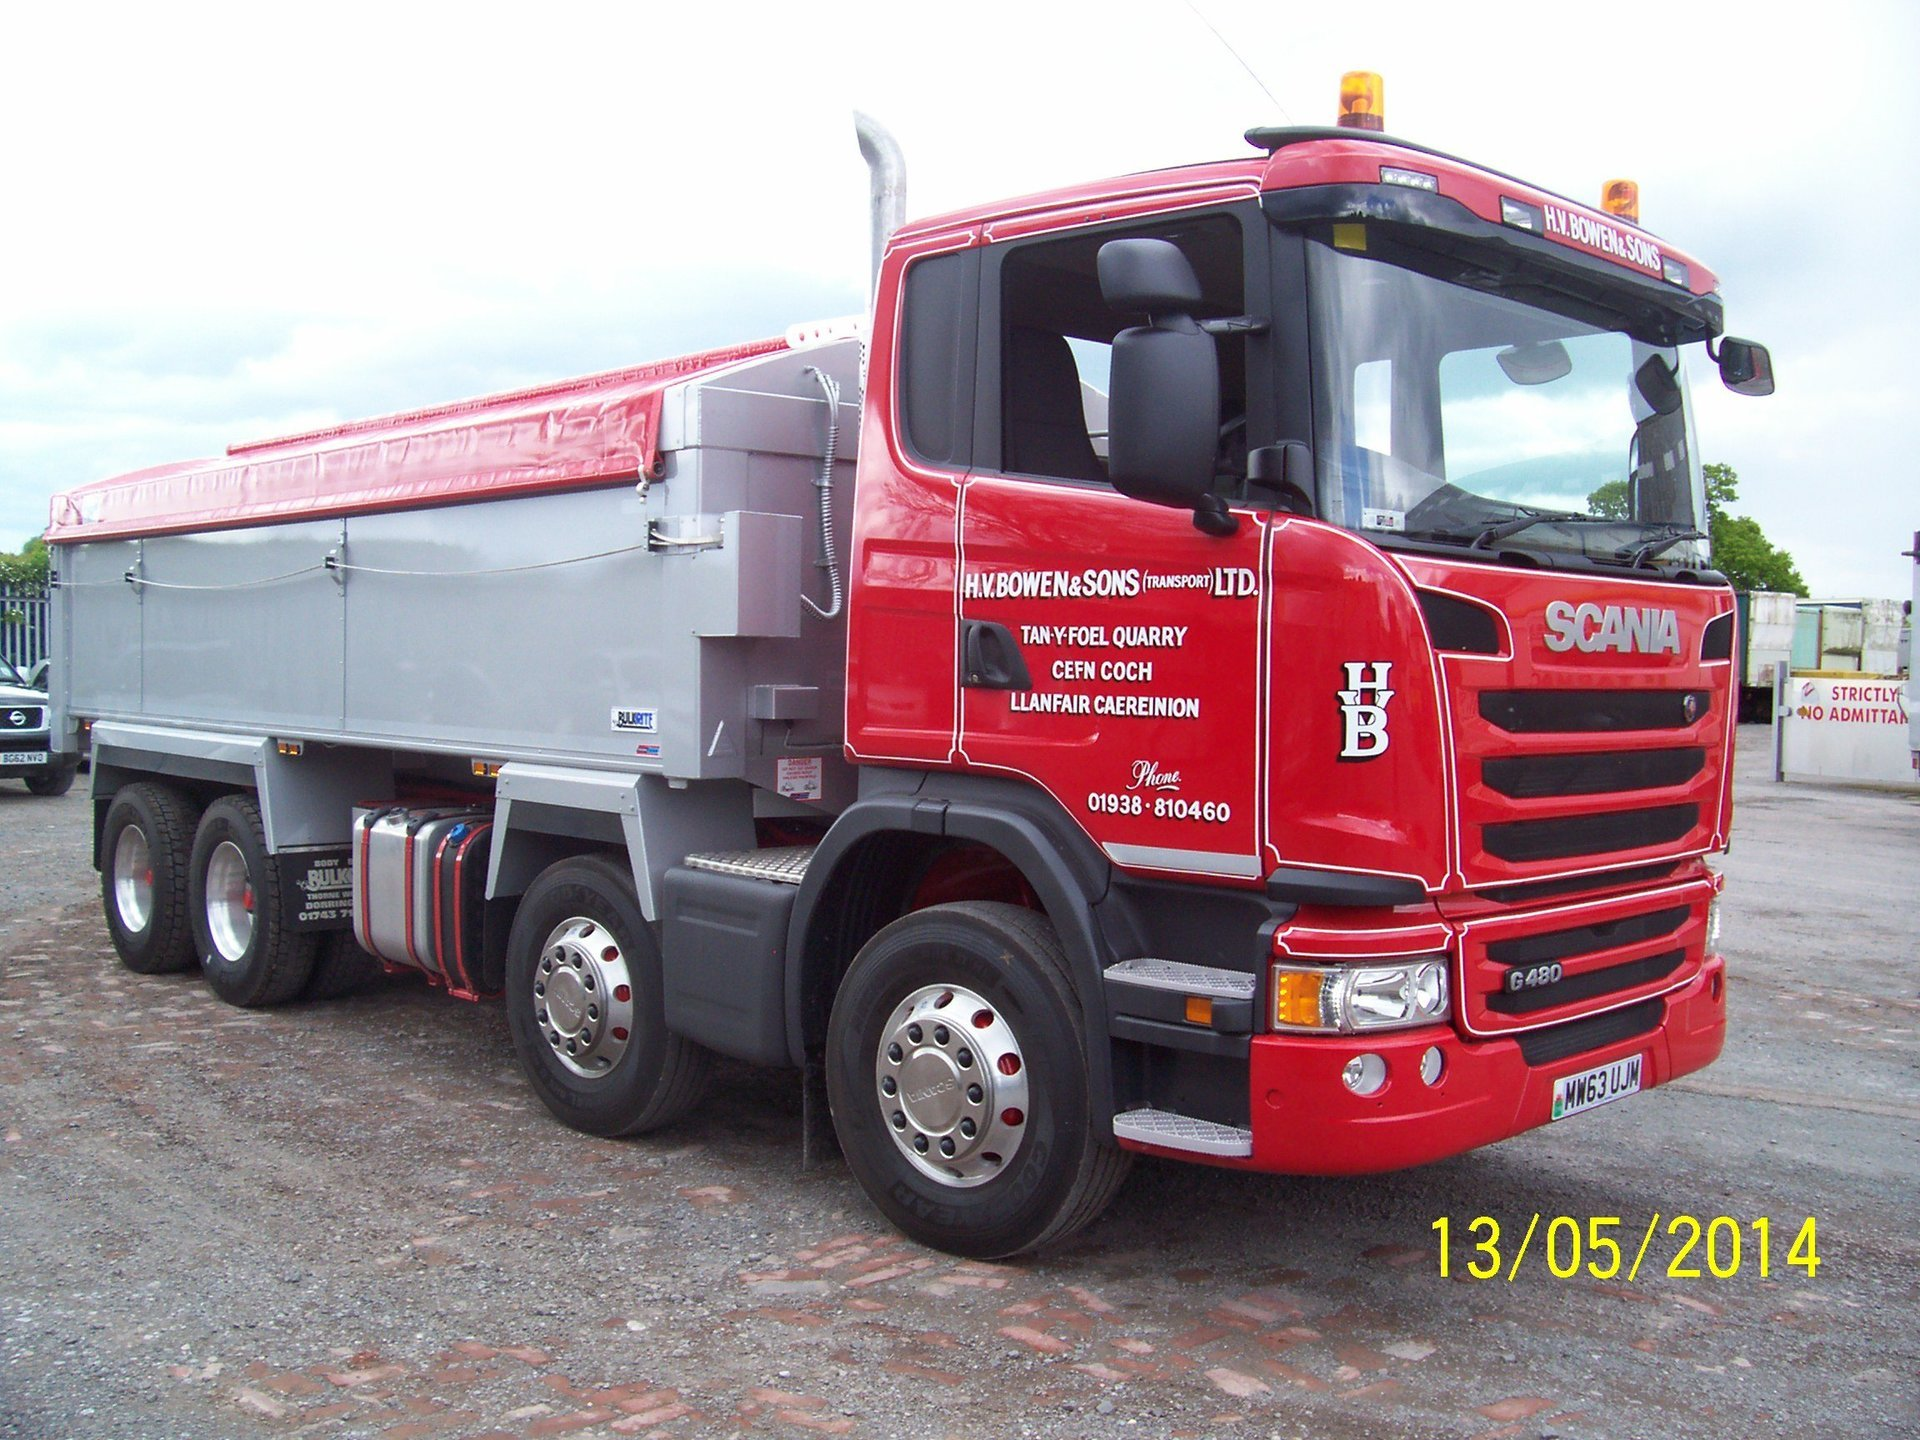 SCANIA truck carrying building supplies